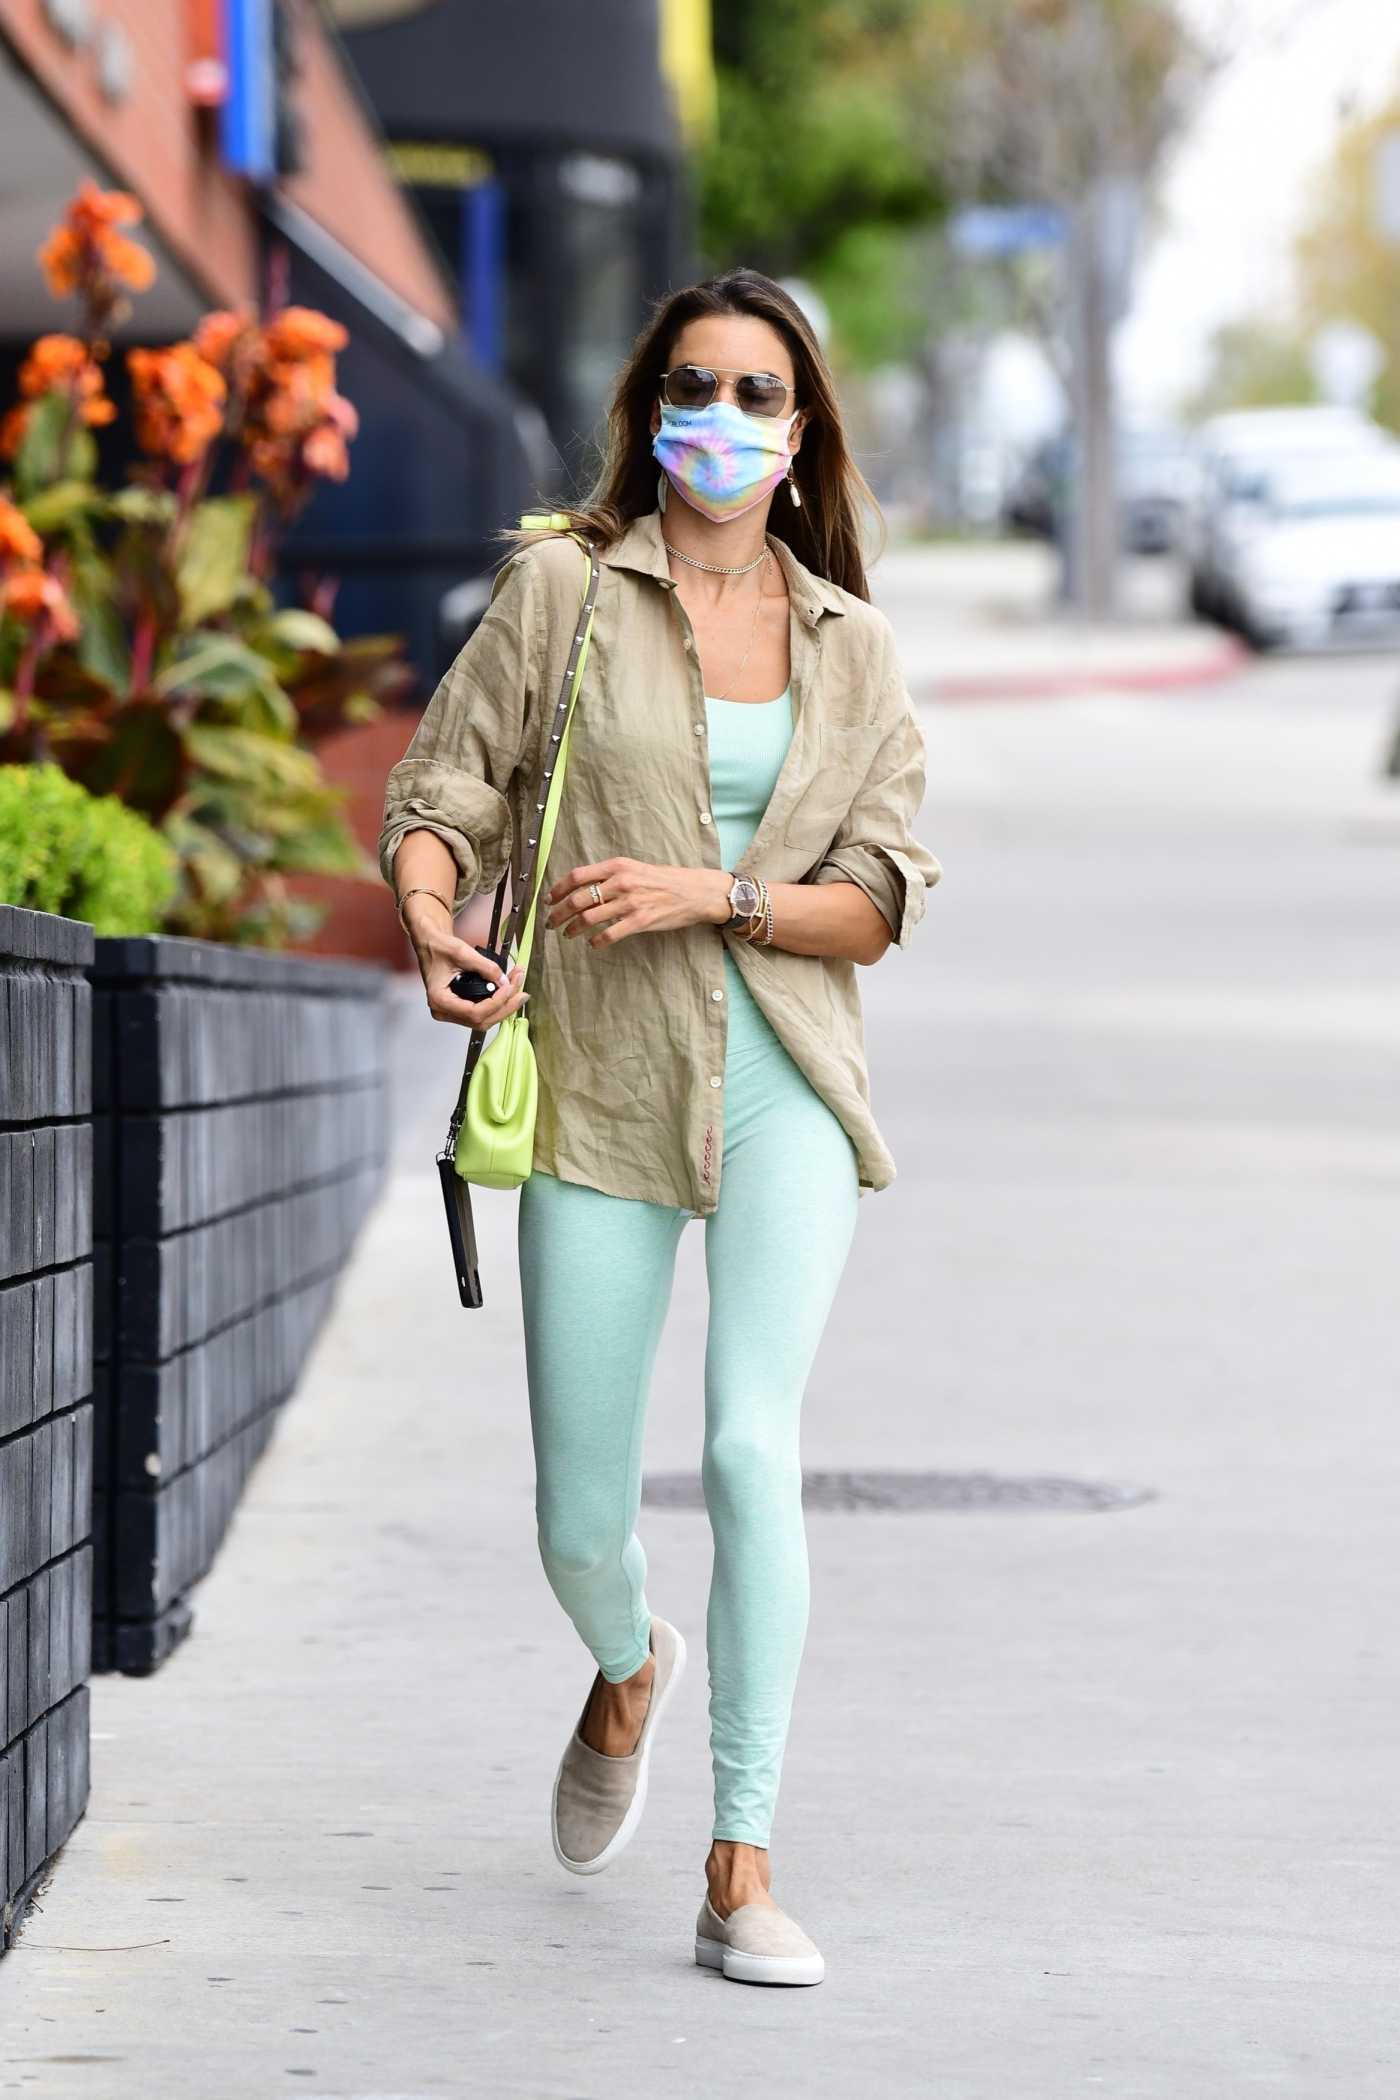 Alessandra Ambrosio in a Beige Shirt Was Seen Out in Brentwood 04/01/2021